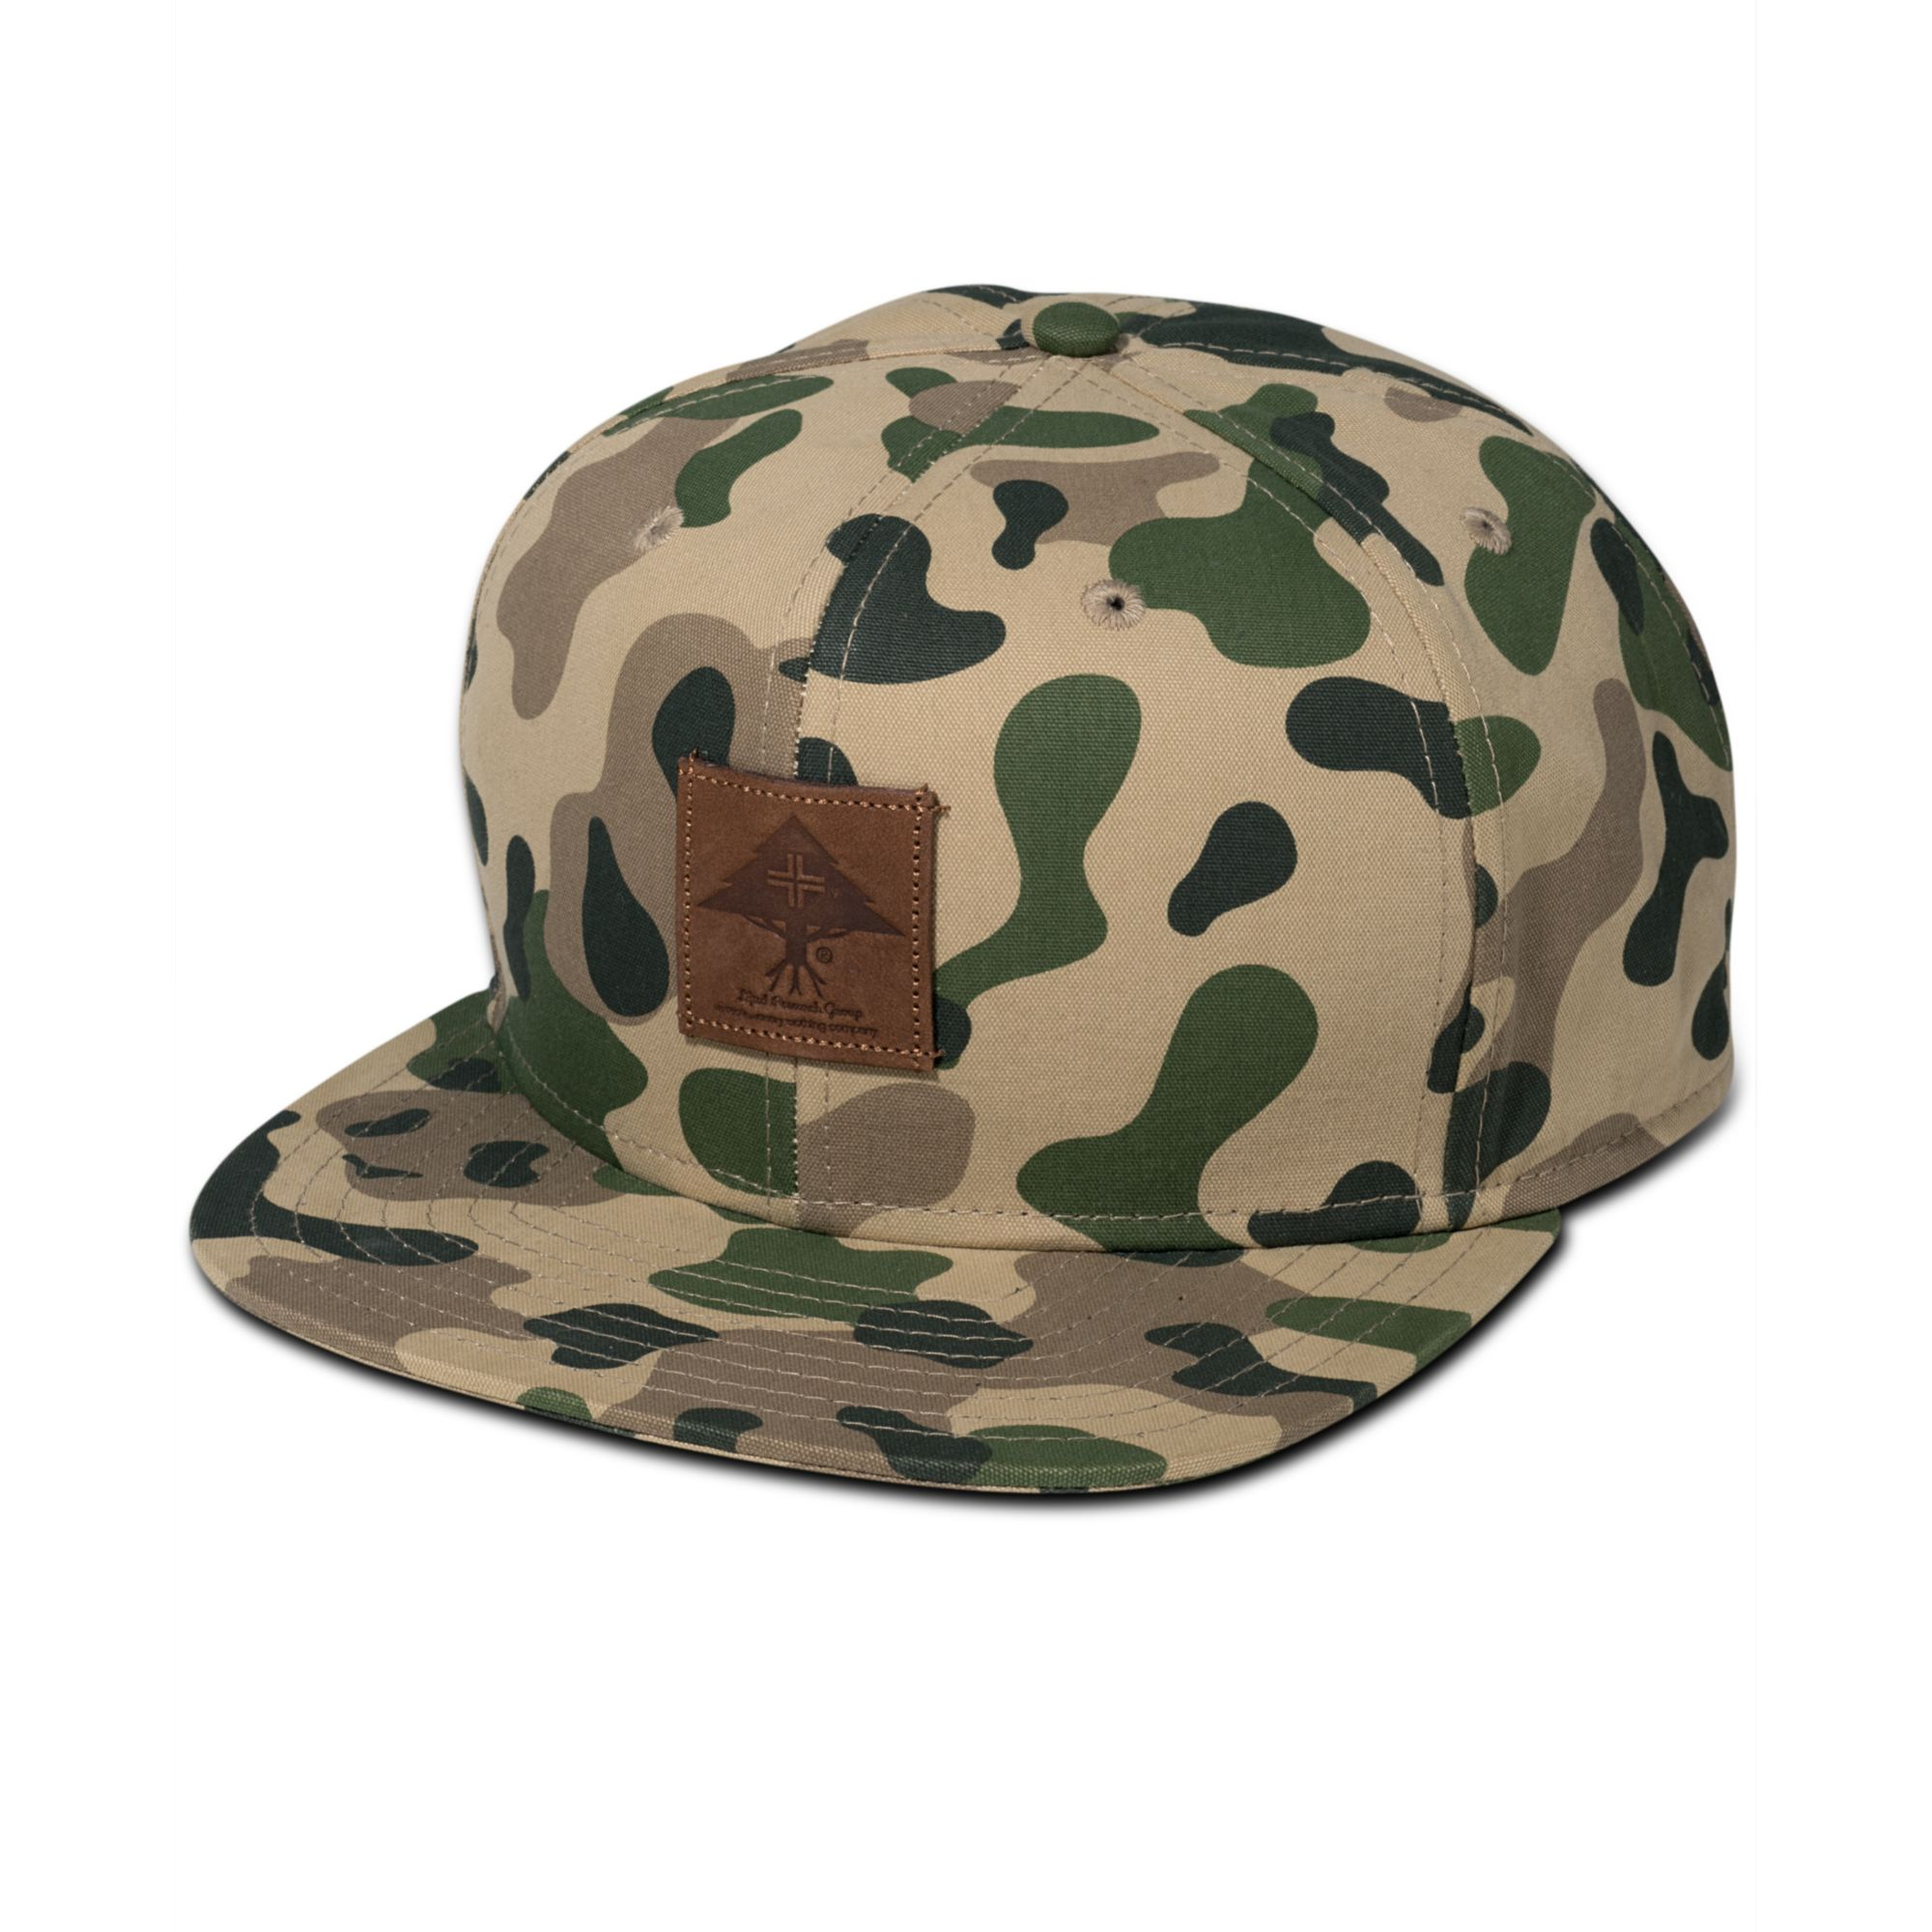 16eac611a55 Lyst - LRG Roots Foundation Camo Hat in Green for Men